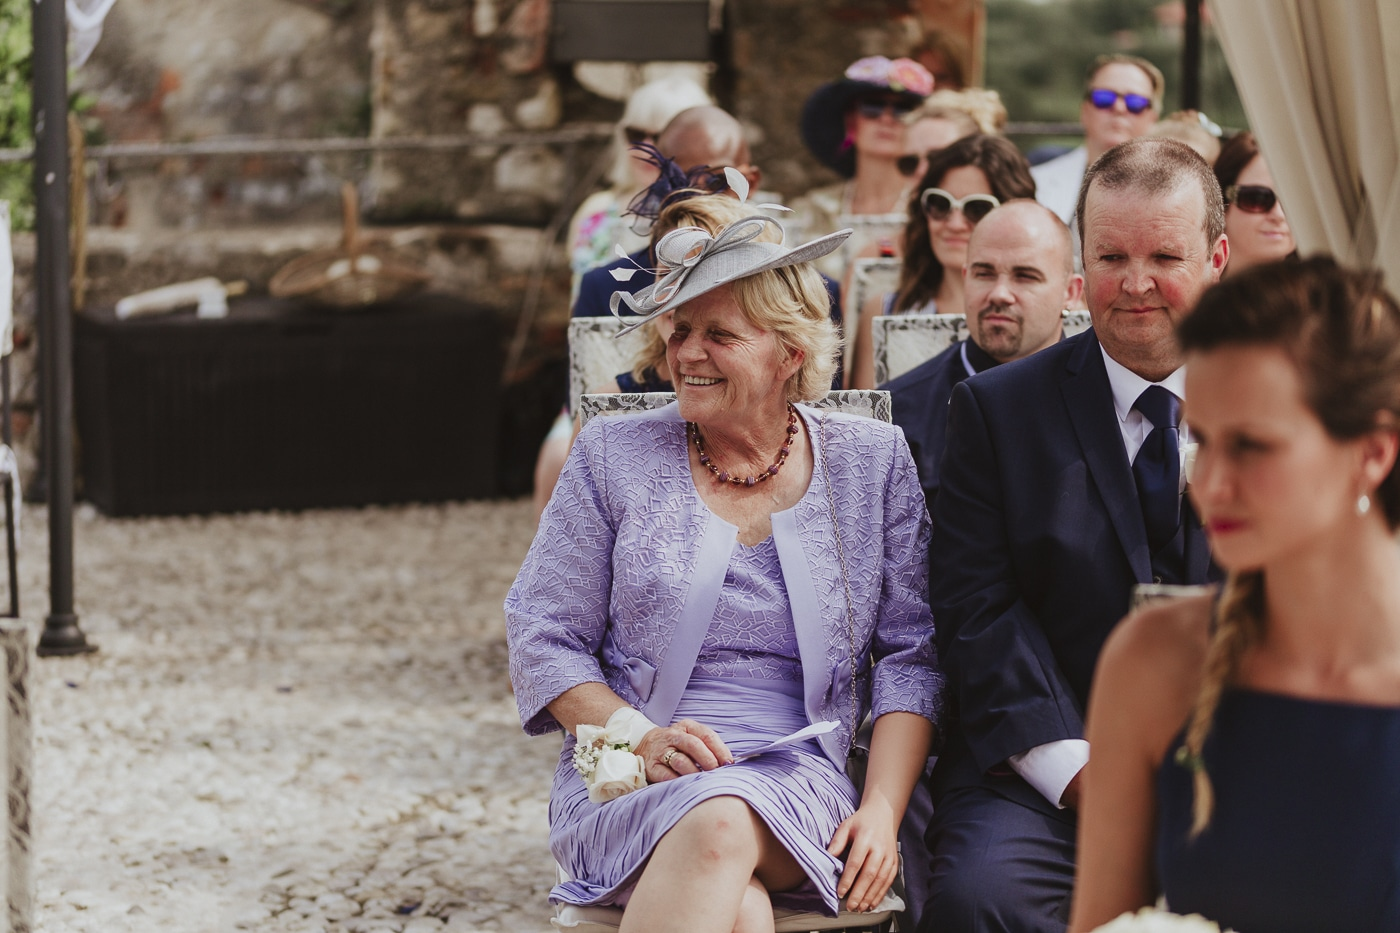 Blonde woman in purple dress and jacket with hat sitting at the front of the wedding guests